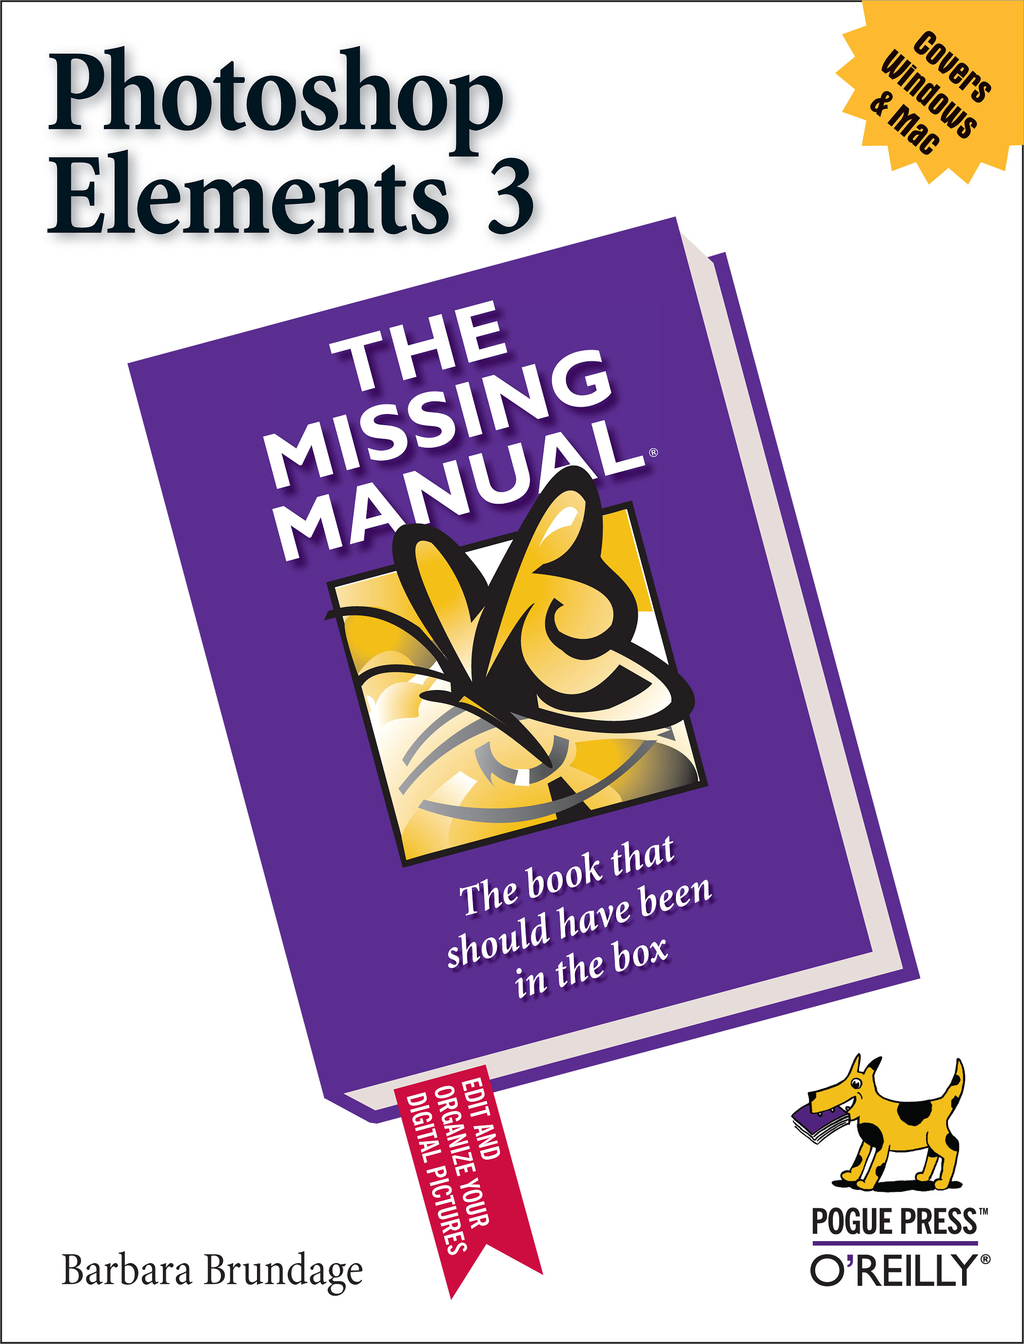 Photoshop Elements 3: The Missing Manual